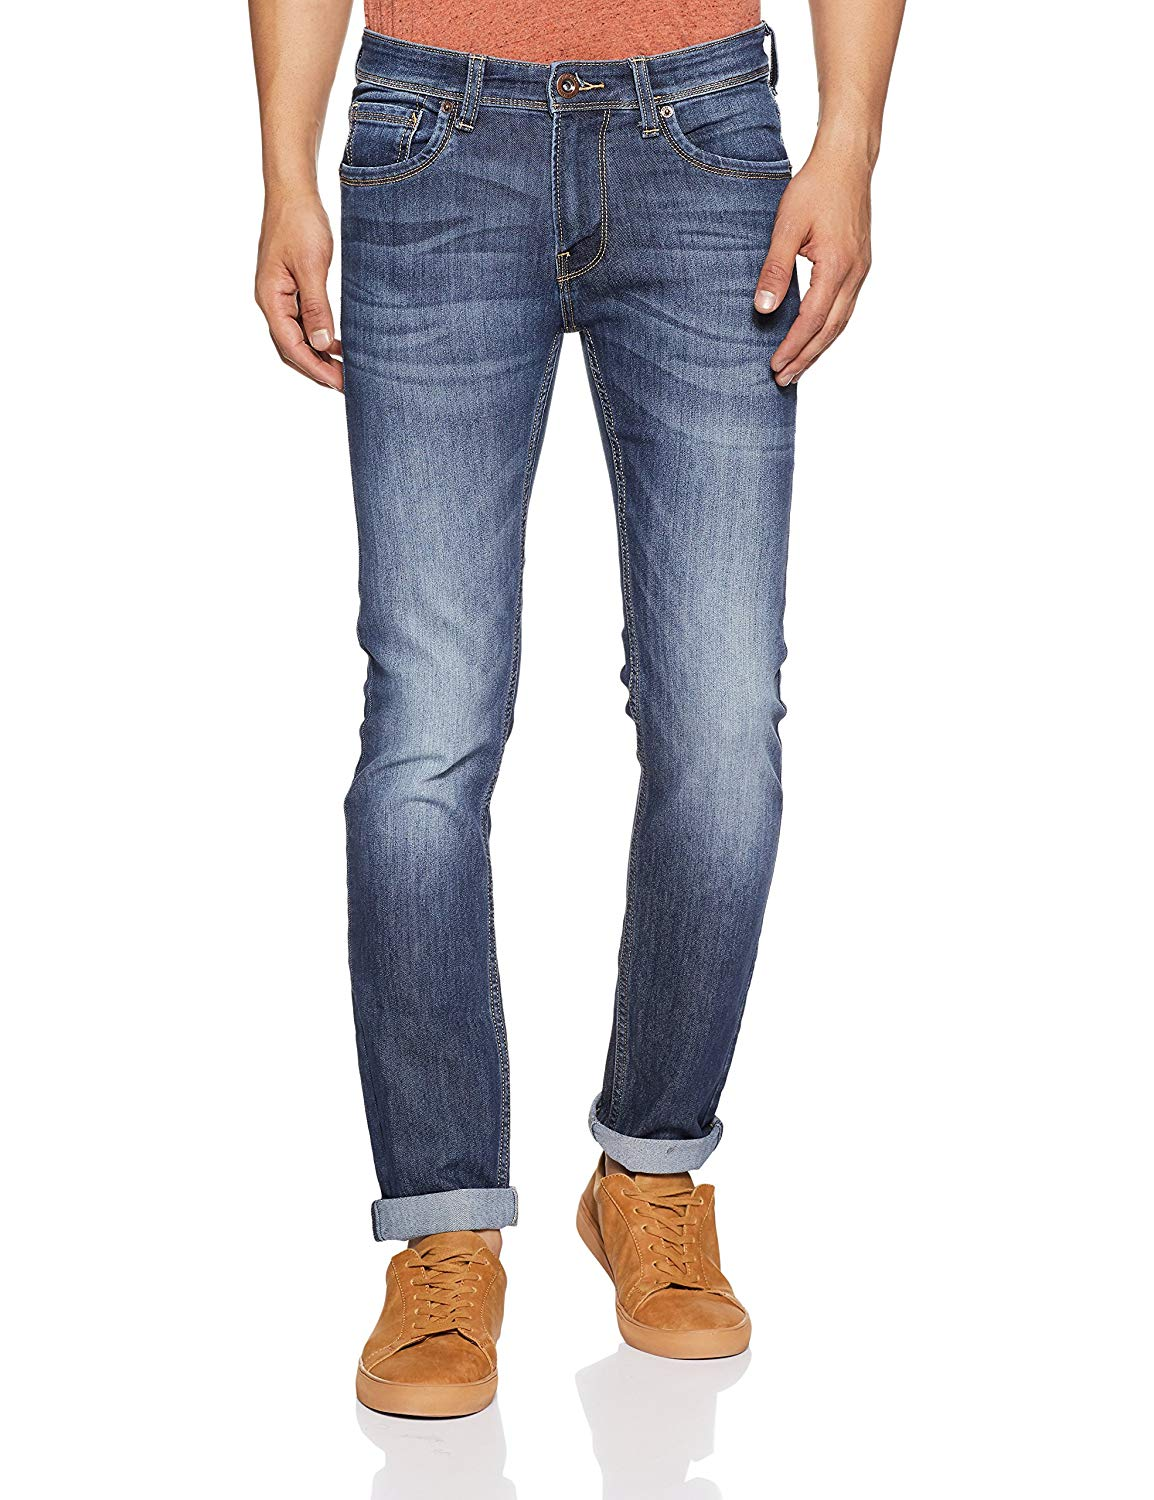 Pepe Jeans Men's Skinny Fit Jeans- Amazon